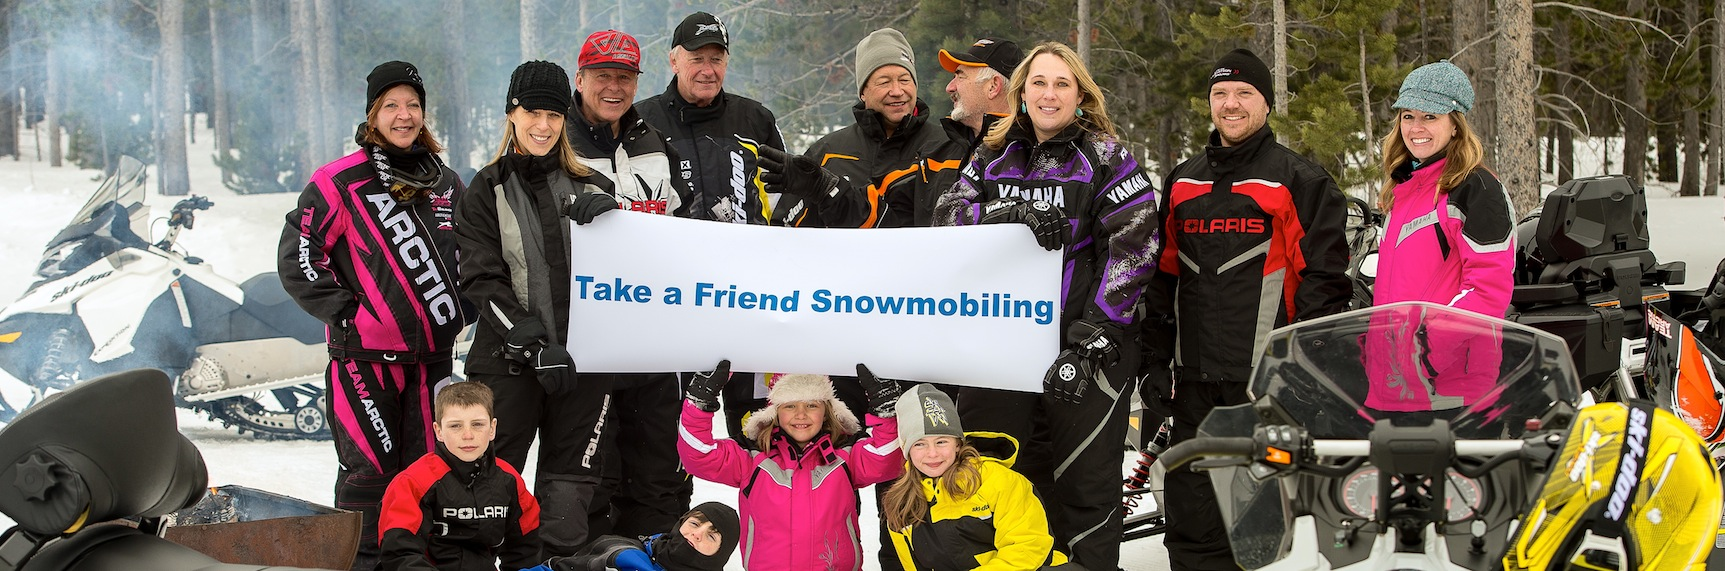 Take Friends Snowmobiling Best Tips